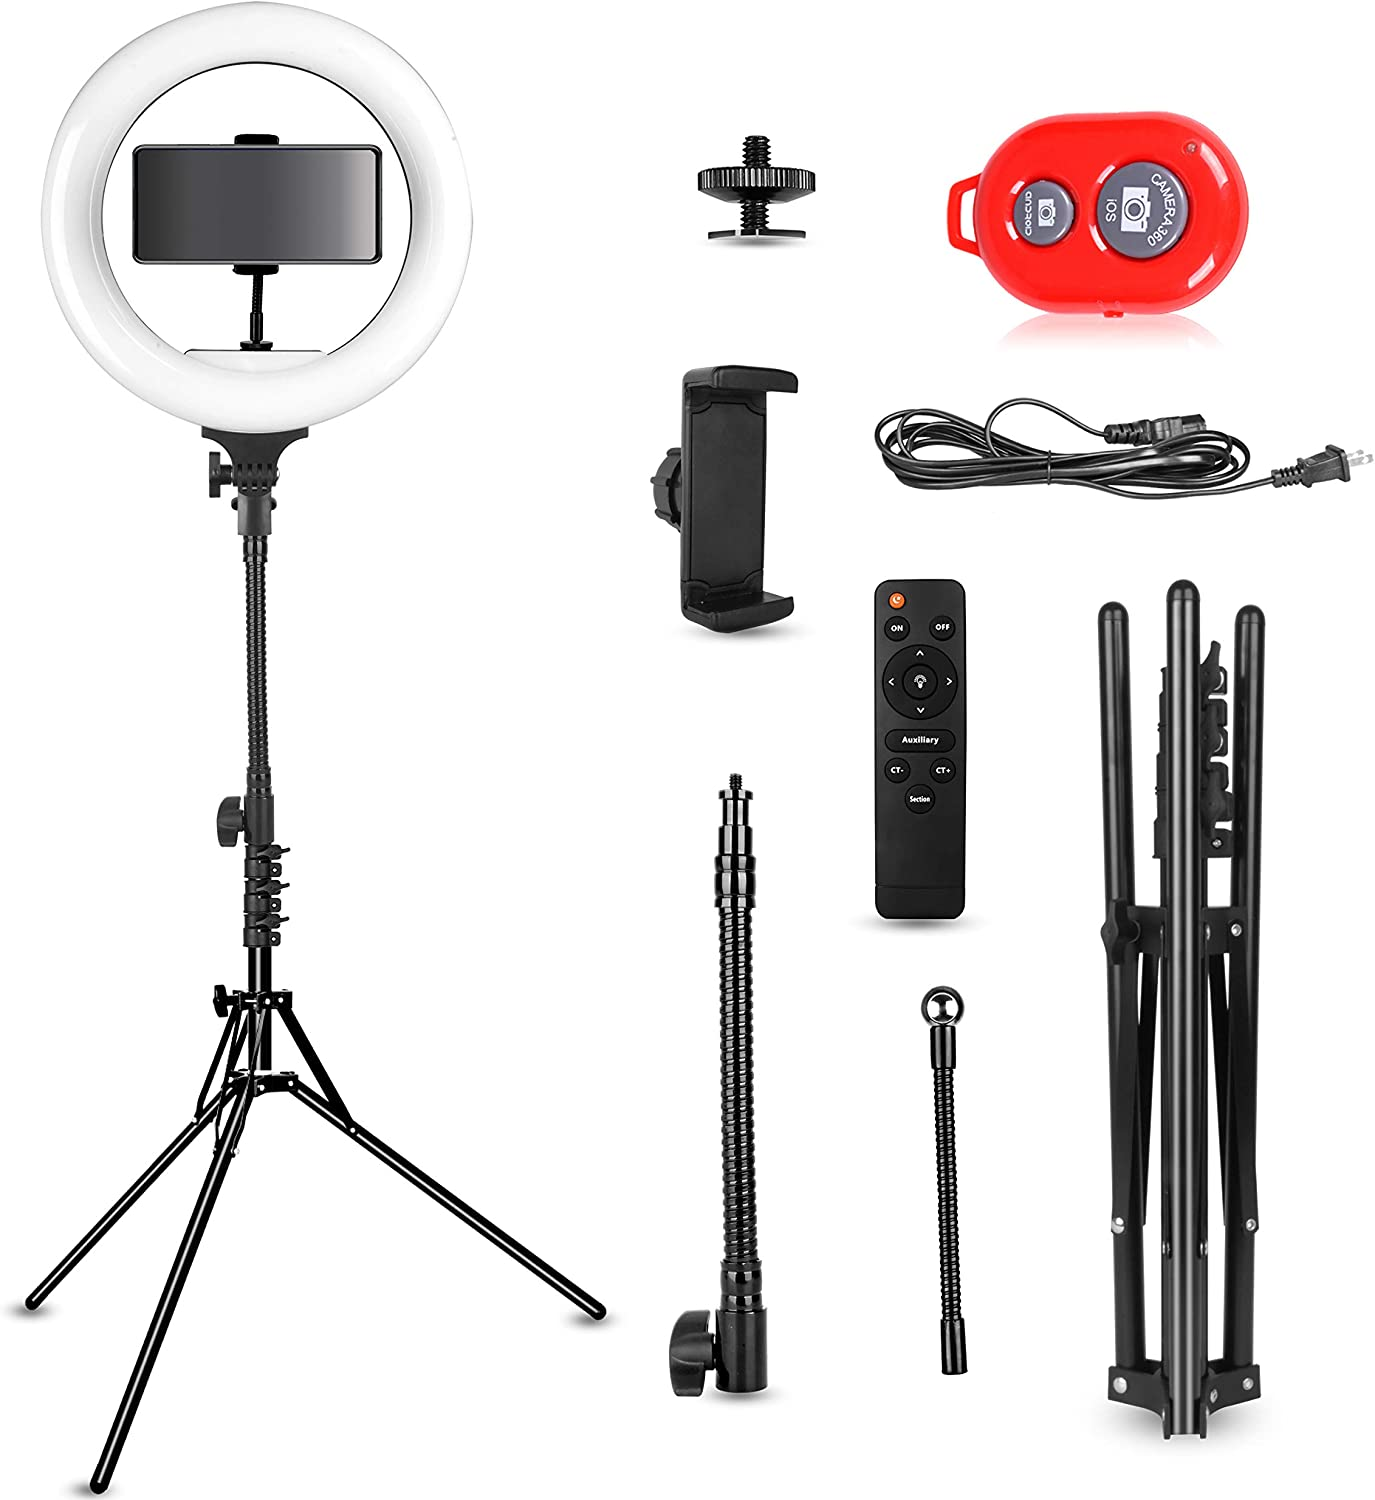 Emart 14 inch Bi-Color LED Ring Light Photography with Stand Ultra Thin Innovation 40W Dimmable /& Color Temperature Adjustable Circle Makeup Lighting Kit for Shooting YouTube Video